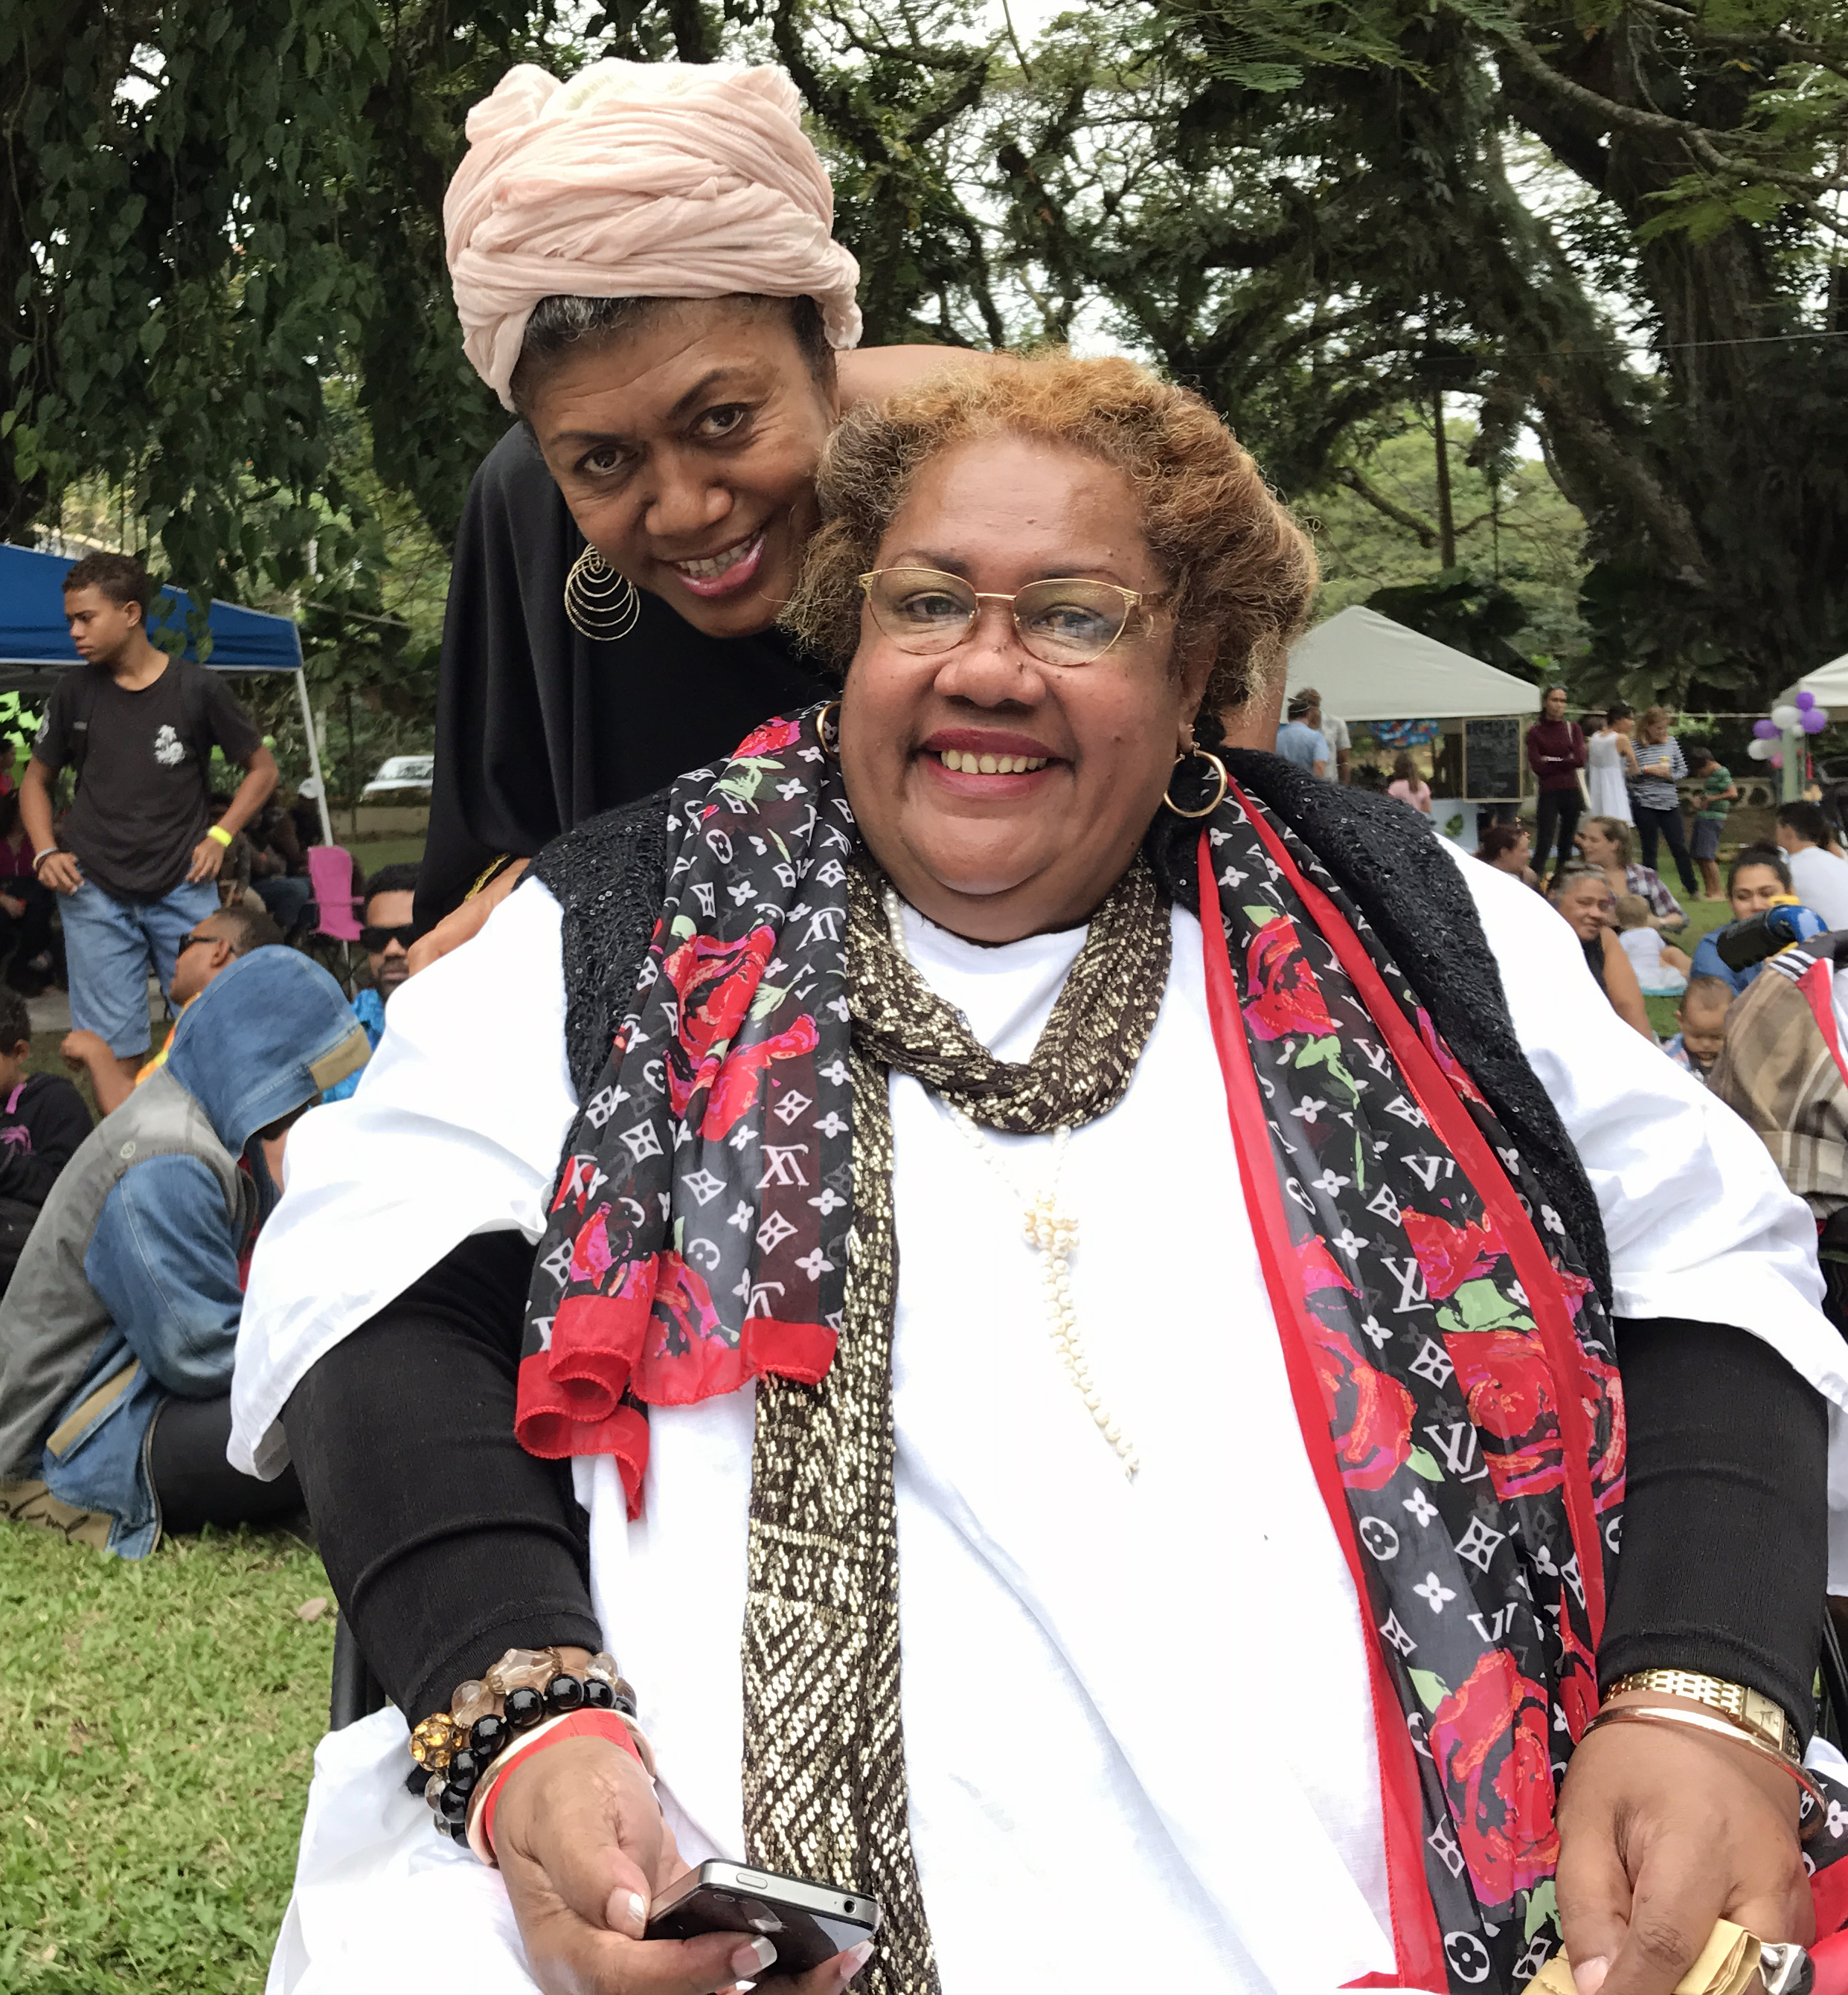 Senimili Toko with Vude Queen Laisa Vulakoro at the Thurston garden food and music festival on July 15, 2017.Photo:Vilimoni Vaganalau.